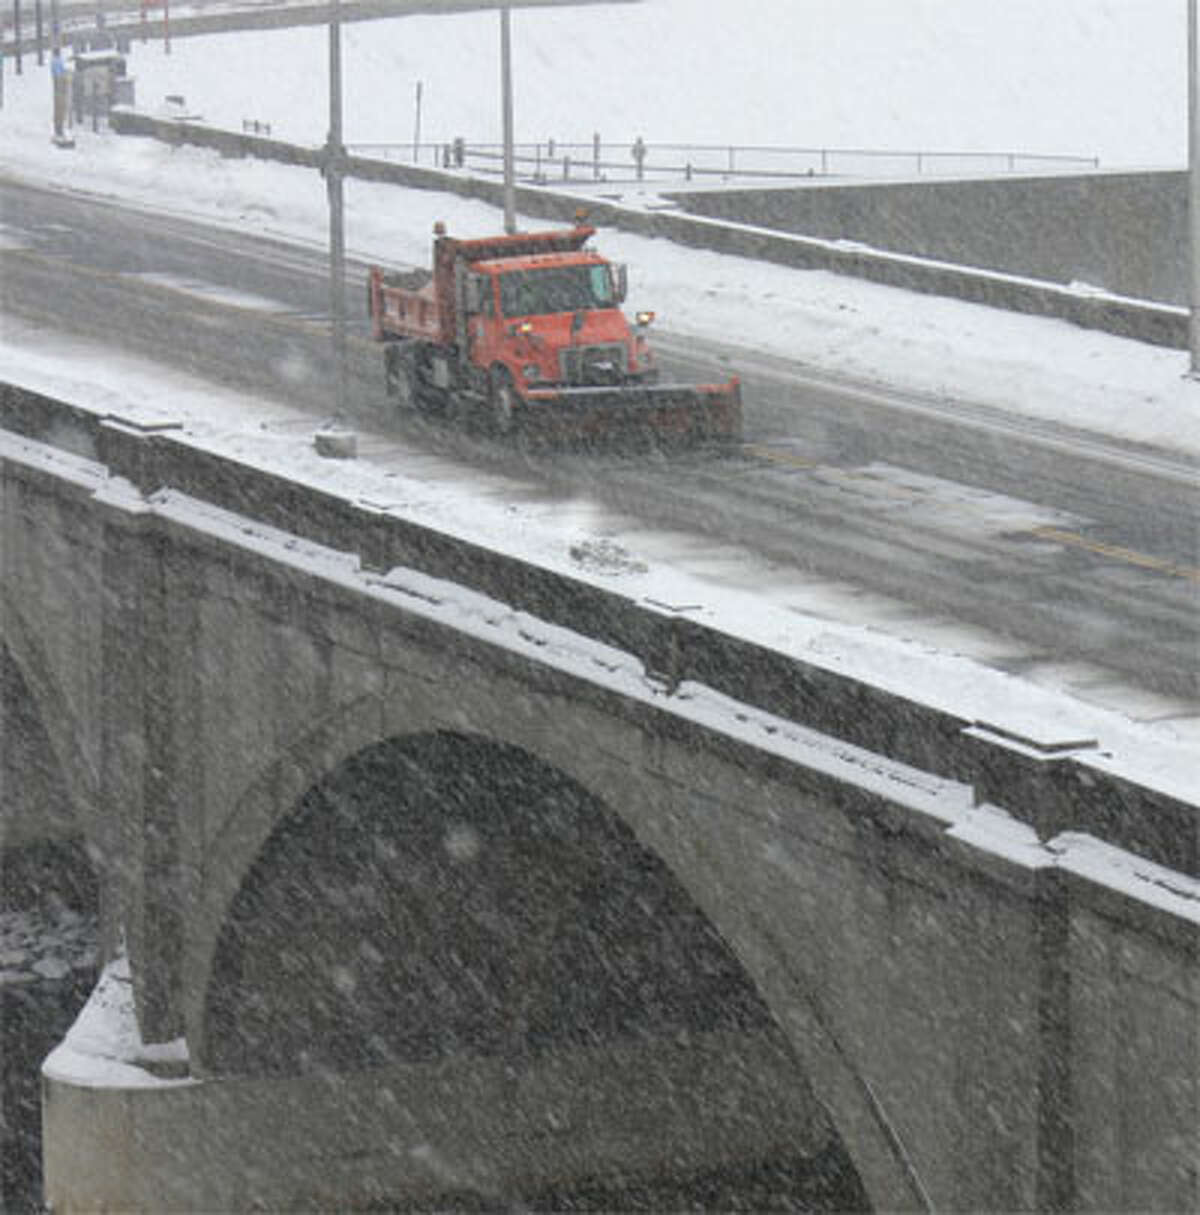 A plow clears snow on the Derby-Shelton Bridge over the Housatonic River.